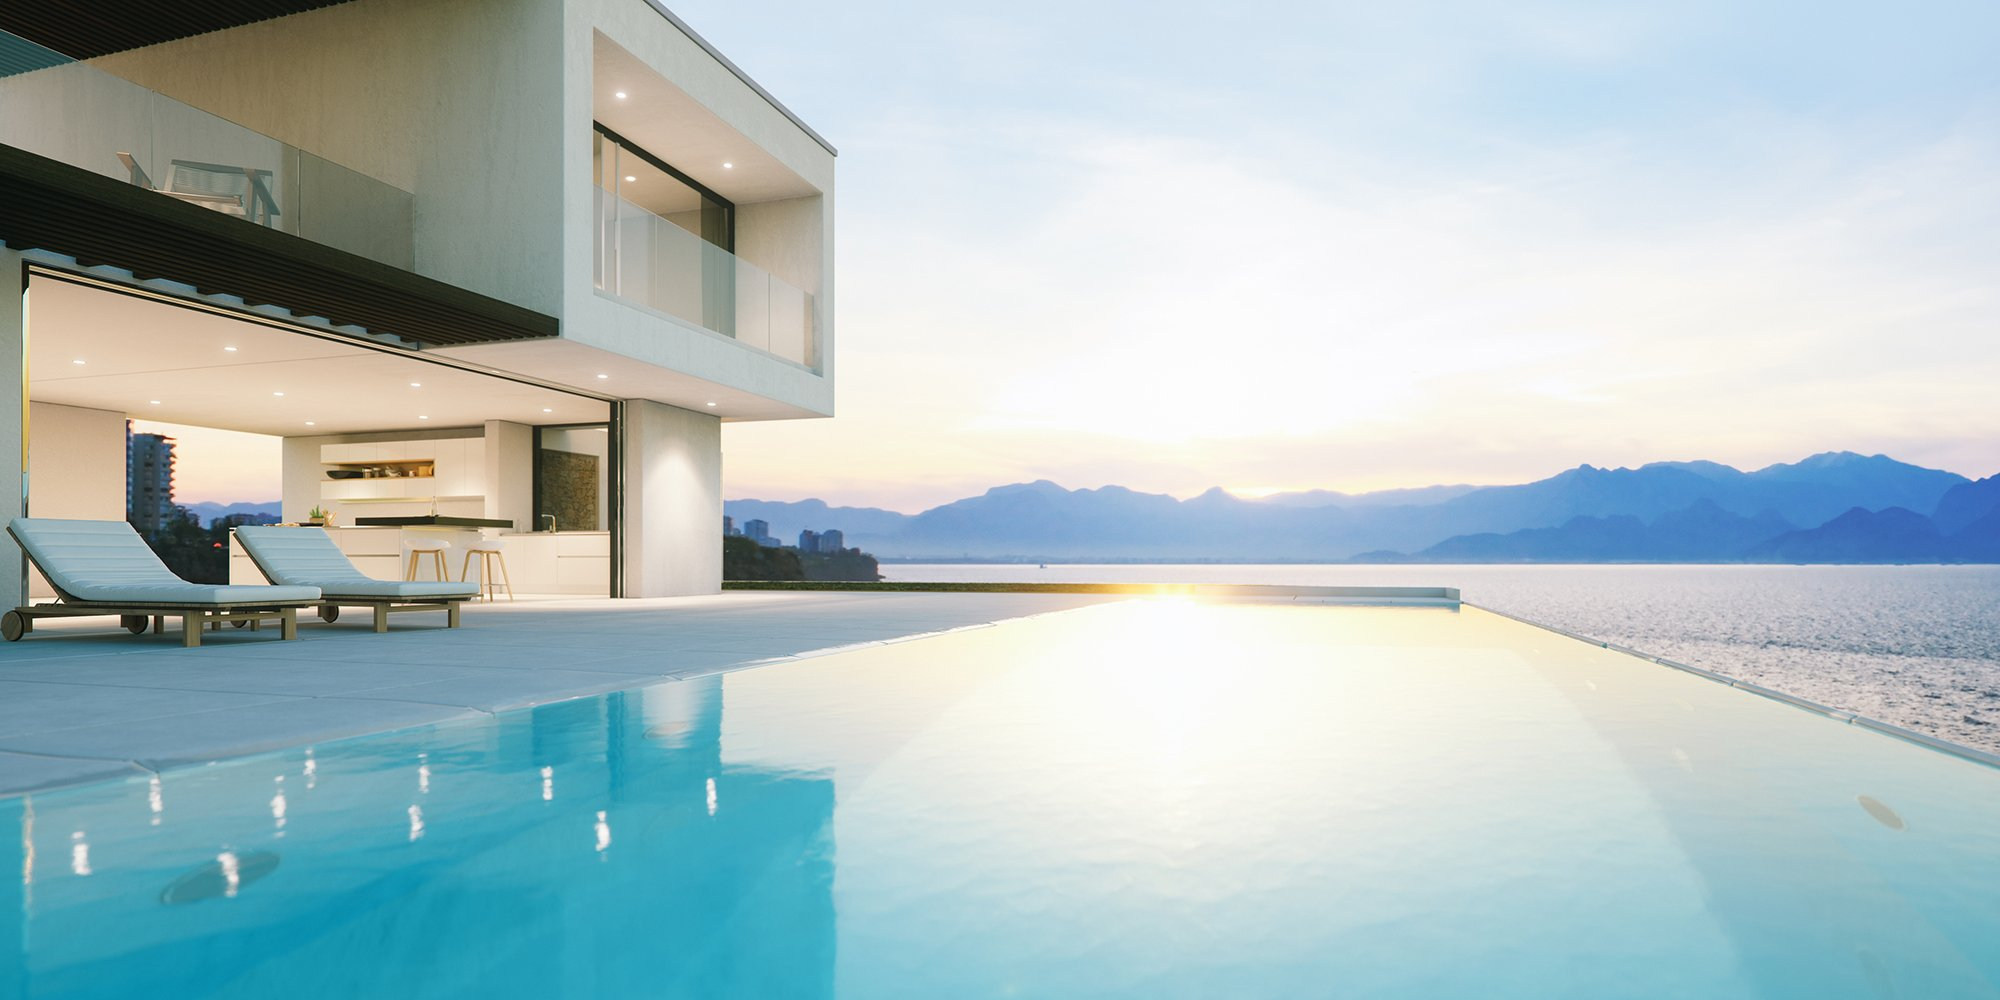 Sunrise on an Infinity Pool with Mountains on the Horizon